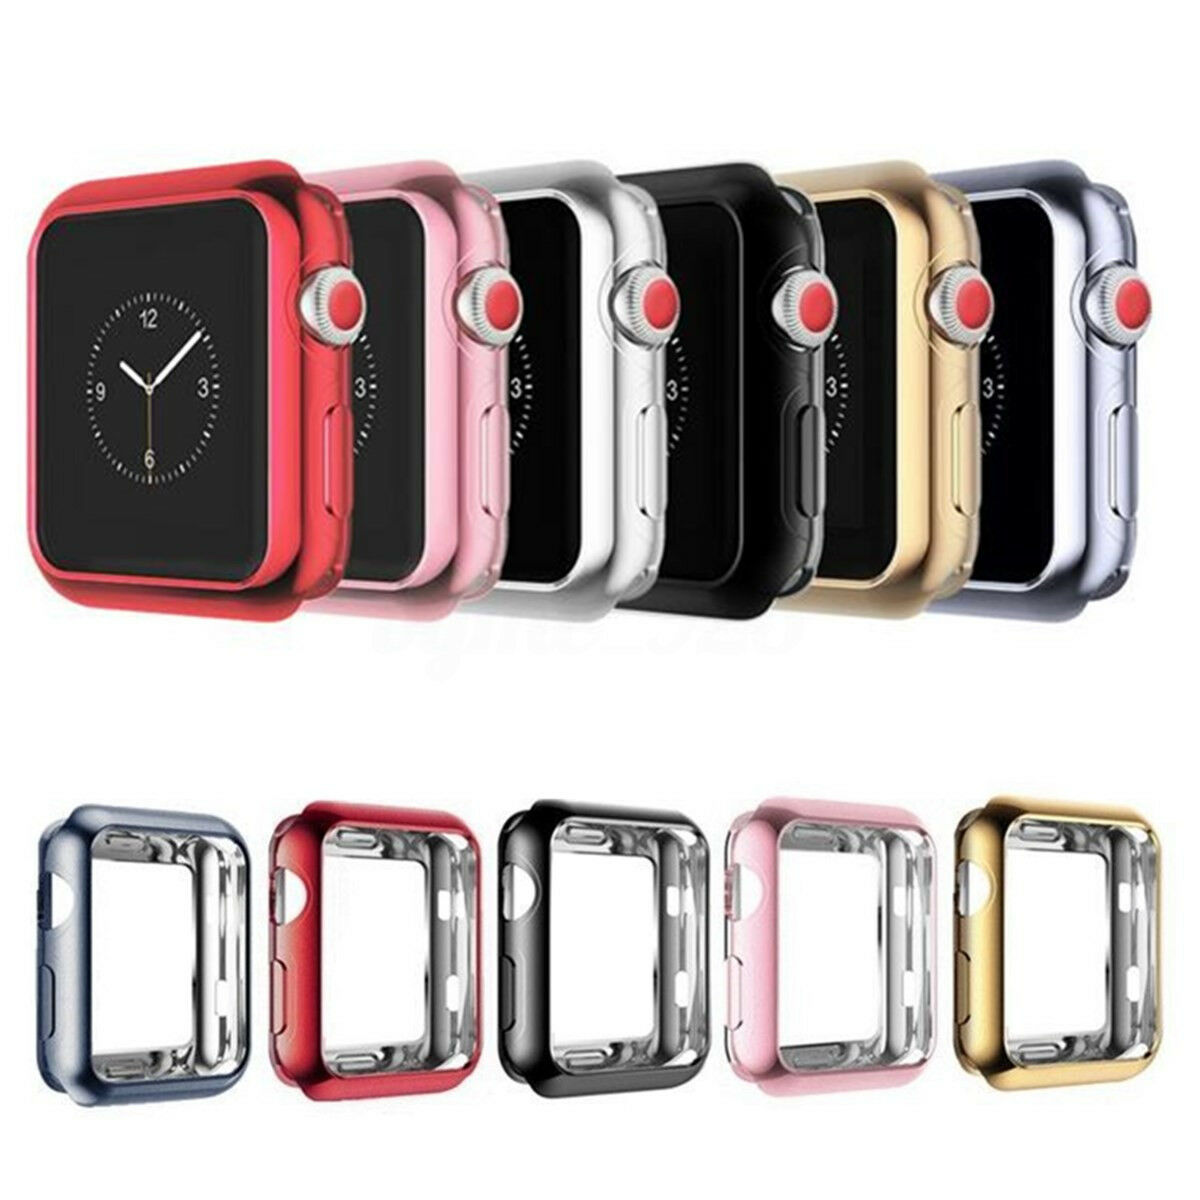 Soft Tpu Electroplate Bumper Protective Case Cover For Apple Watch 3 Spigen Rugged Armor 38mm Softcase Original 1 Of 8free Shipping 2 38